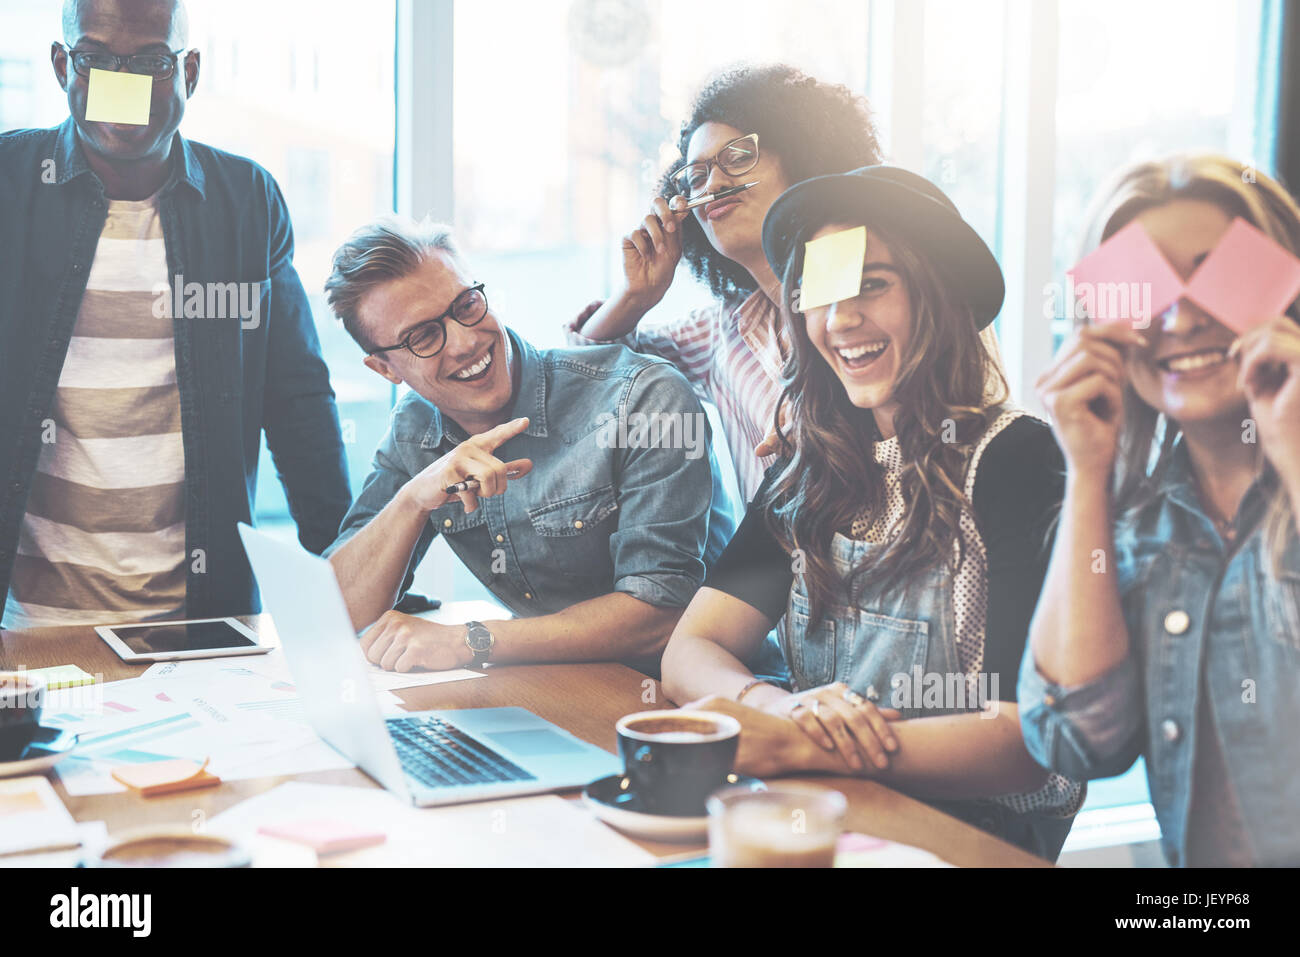 Joking group of diverse young adult coworkers playing with sticky notes on their faces as a distraction during a - Stock Image